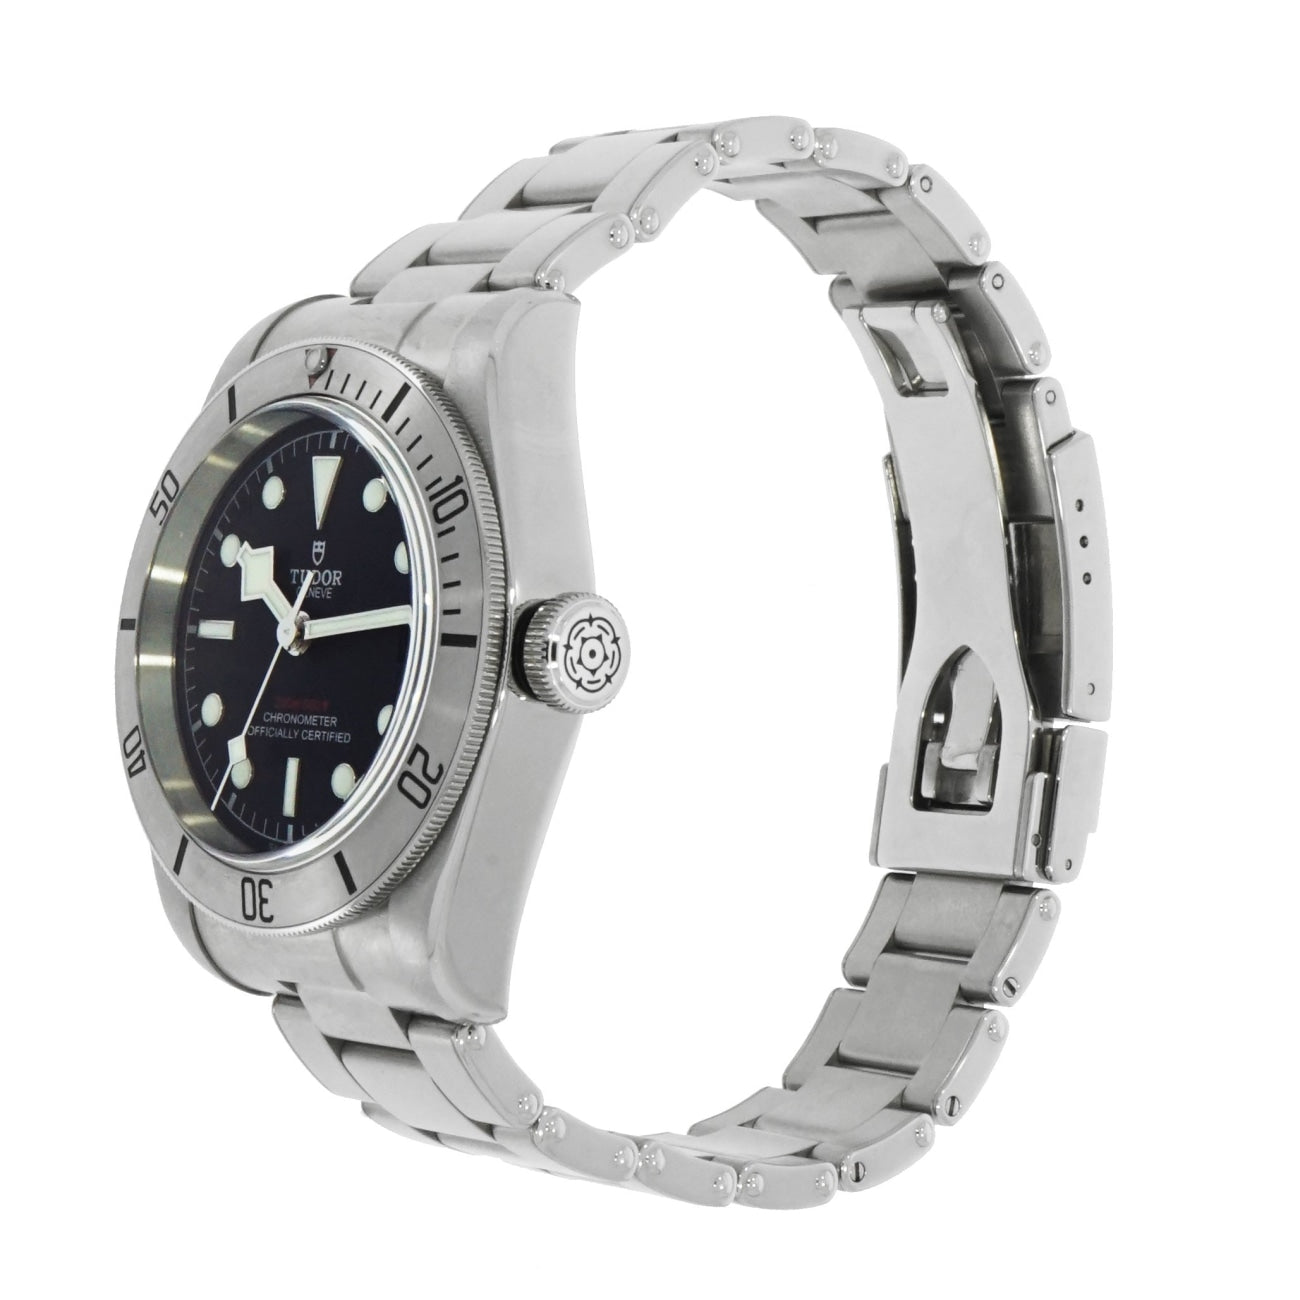 Pre-Owned Tudor Watches - Tudor Heritage Black Bay | Manfredi Jewels